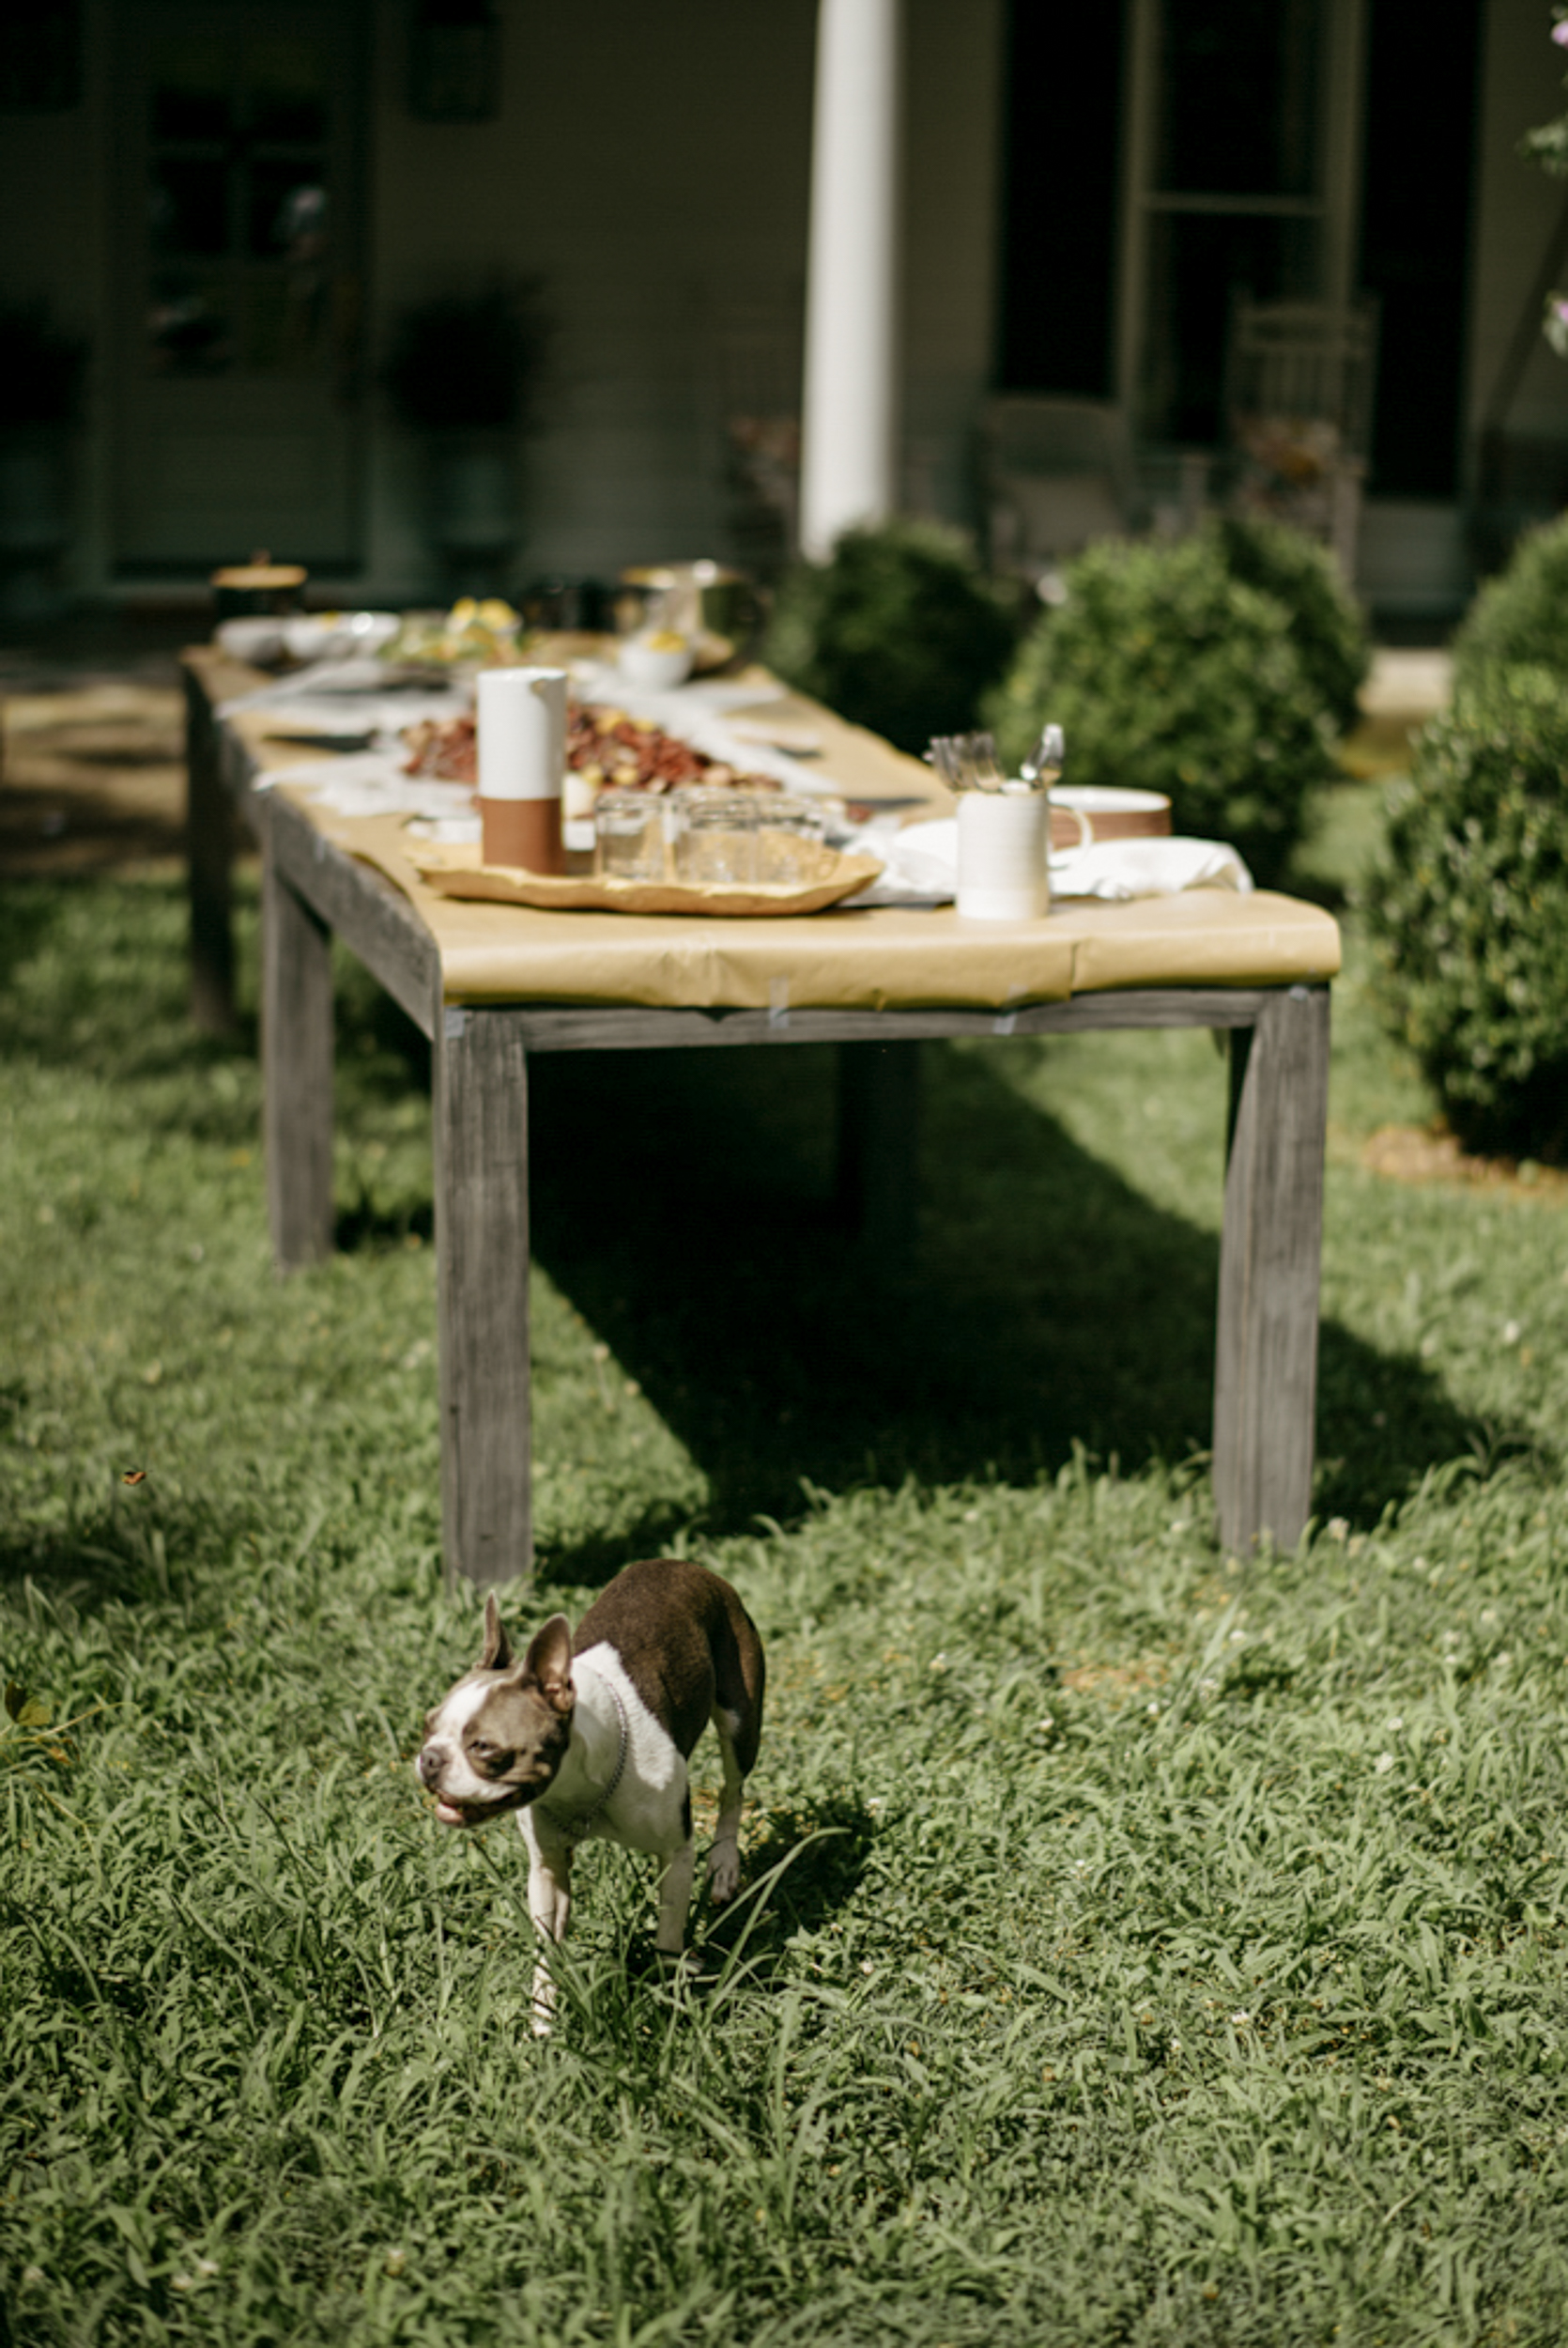 151-mayker-creative-crawfish-boil-summer-party-ideas-rentals-nashville-design-tips-hosting-entertaining-Fox-Country-Farmhouse-Fourth-of-July.jpg